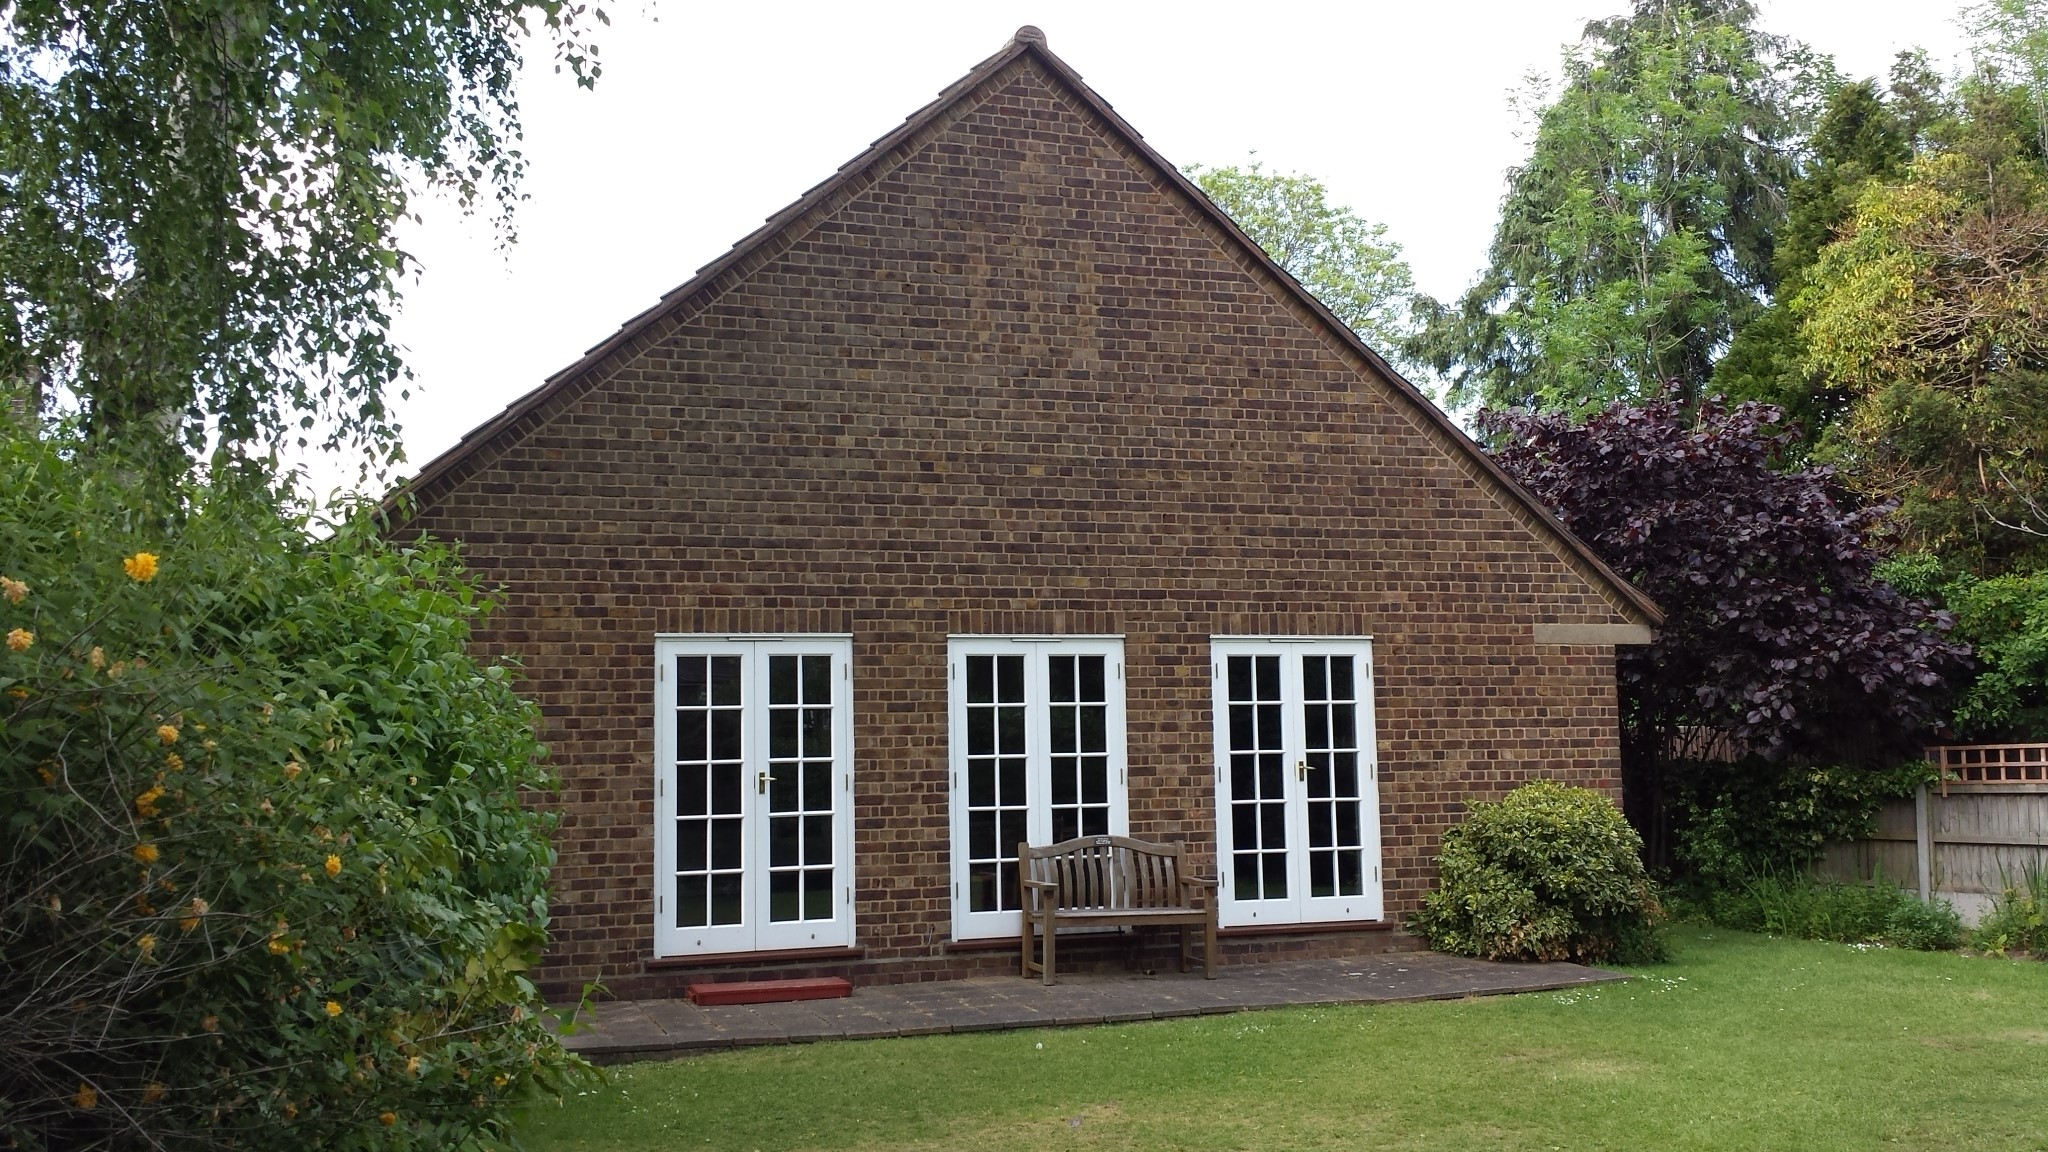 Shenfield Brentwood Friends House room hire